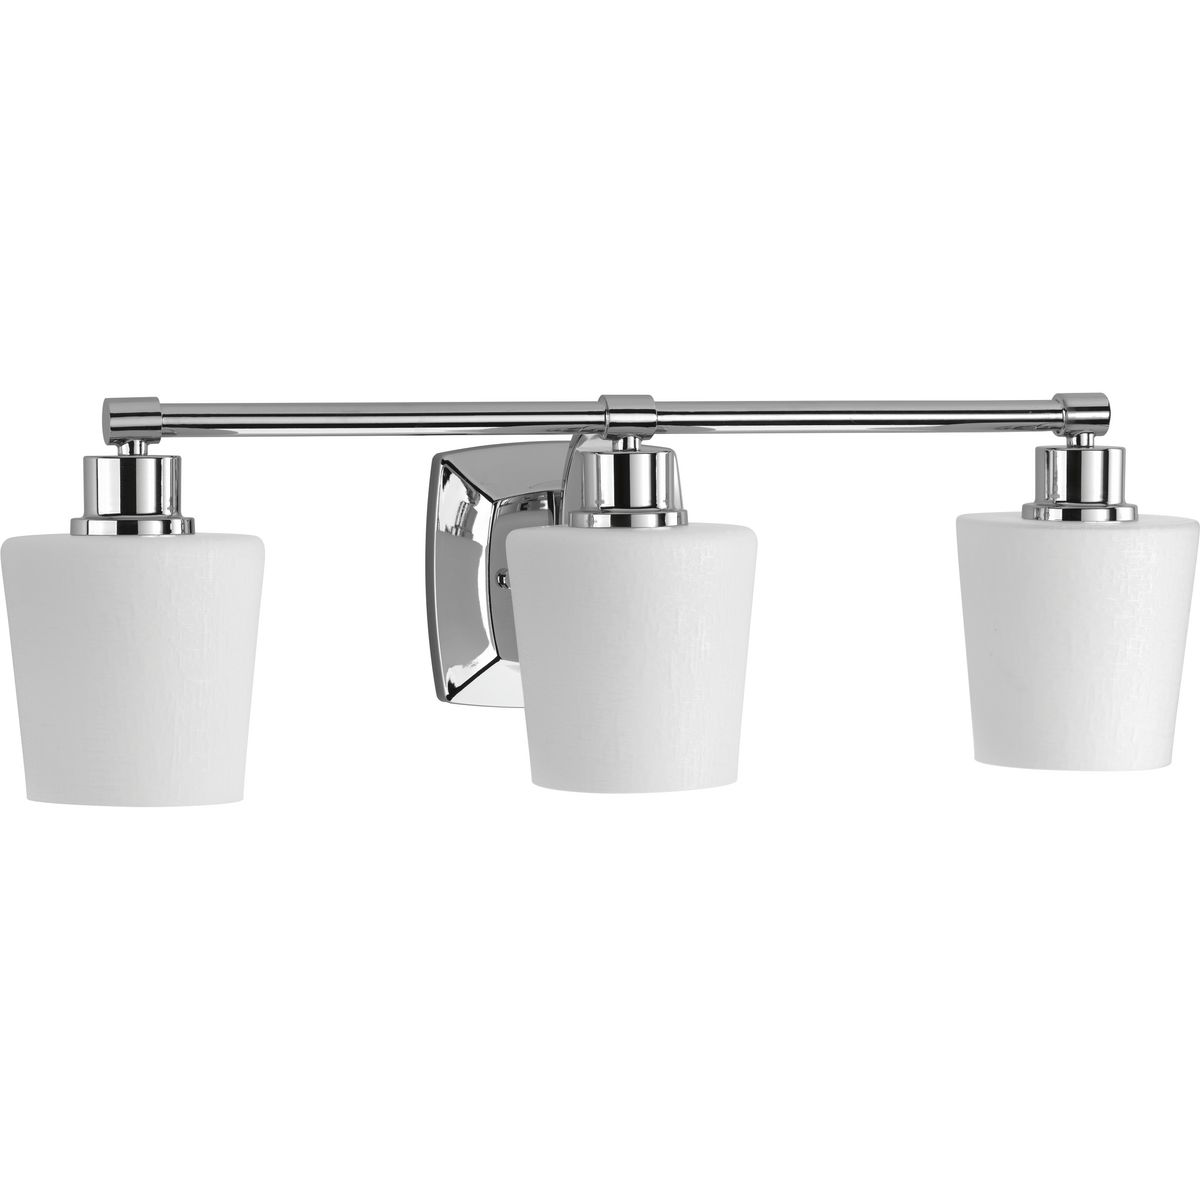 Glance Collection Three Light Polished Chrome Etched White Linen Glass Farmhouse Bath Vanity Light P300018 015 Progress Lighting